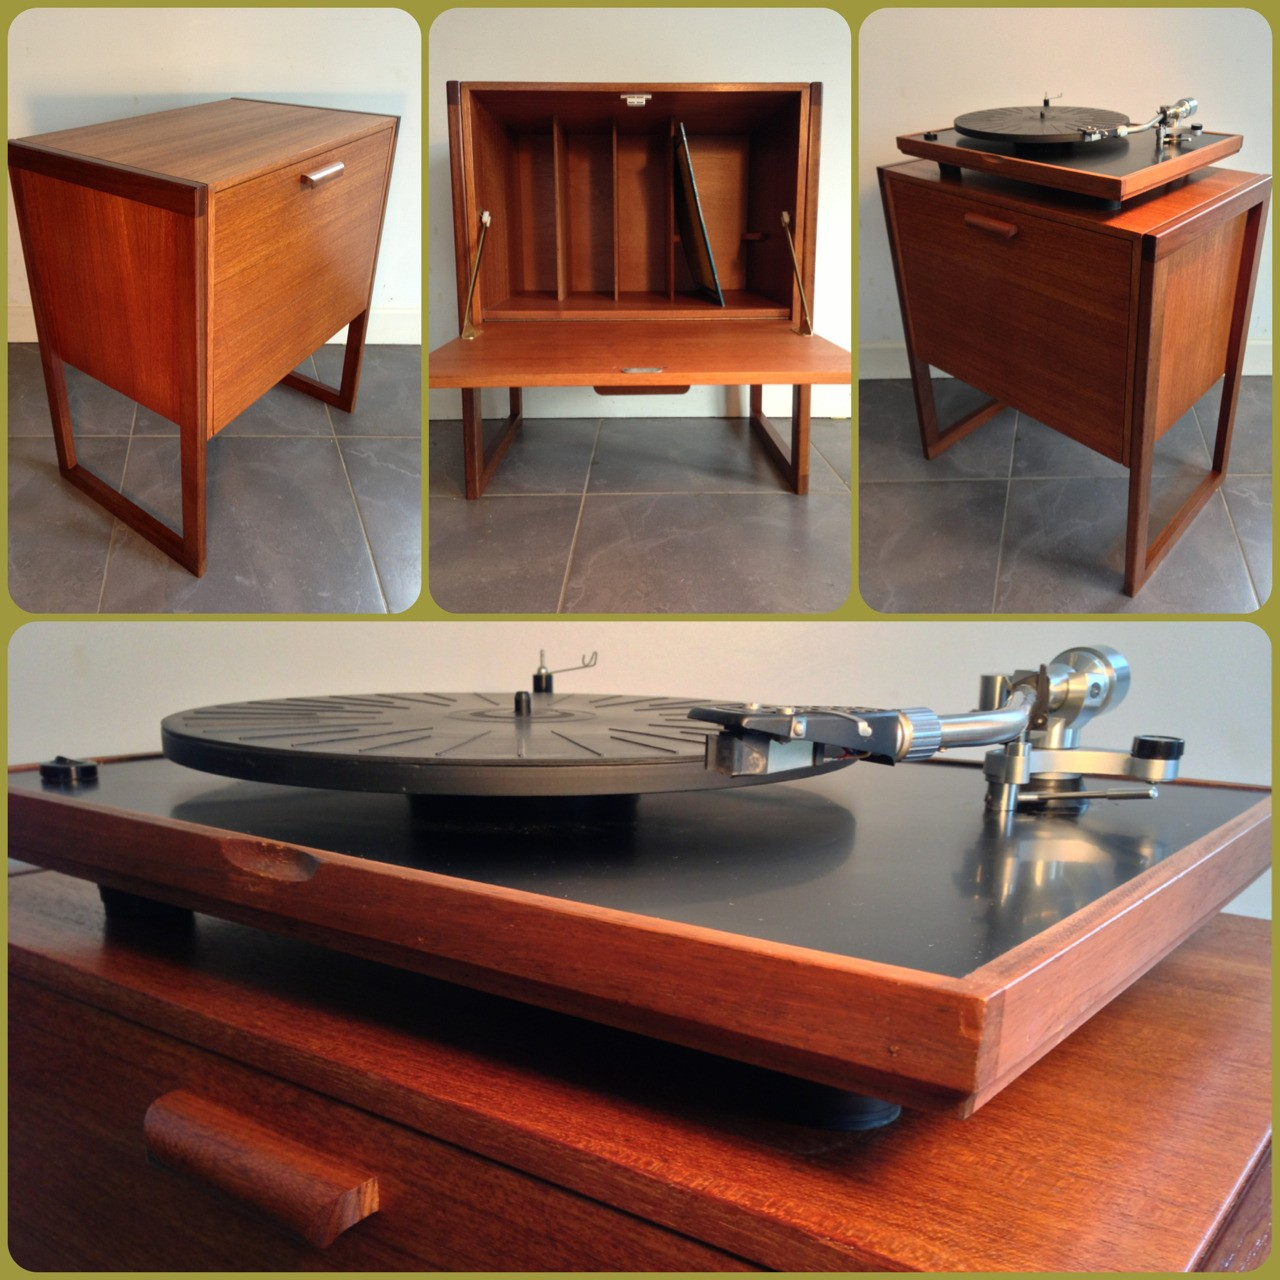 A Real Bargain For All Music Lovers Or Vintage Design Enthusiasts, This  Record Cabinet Enchants With Its Original Teak Wood, Being A Symbol Of The  1960u0027s ...